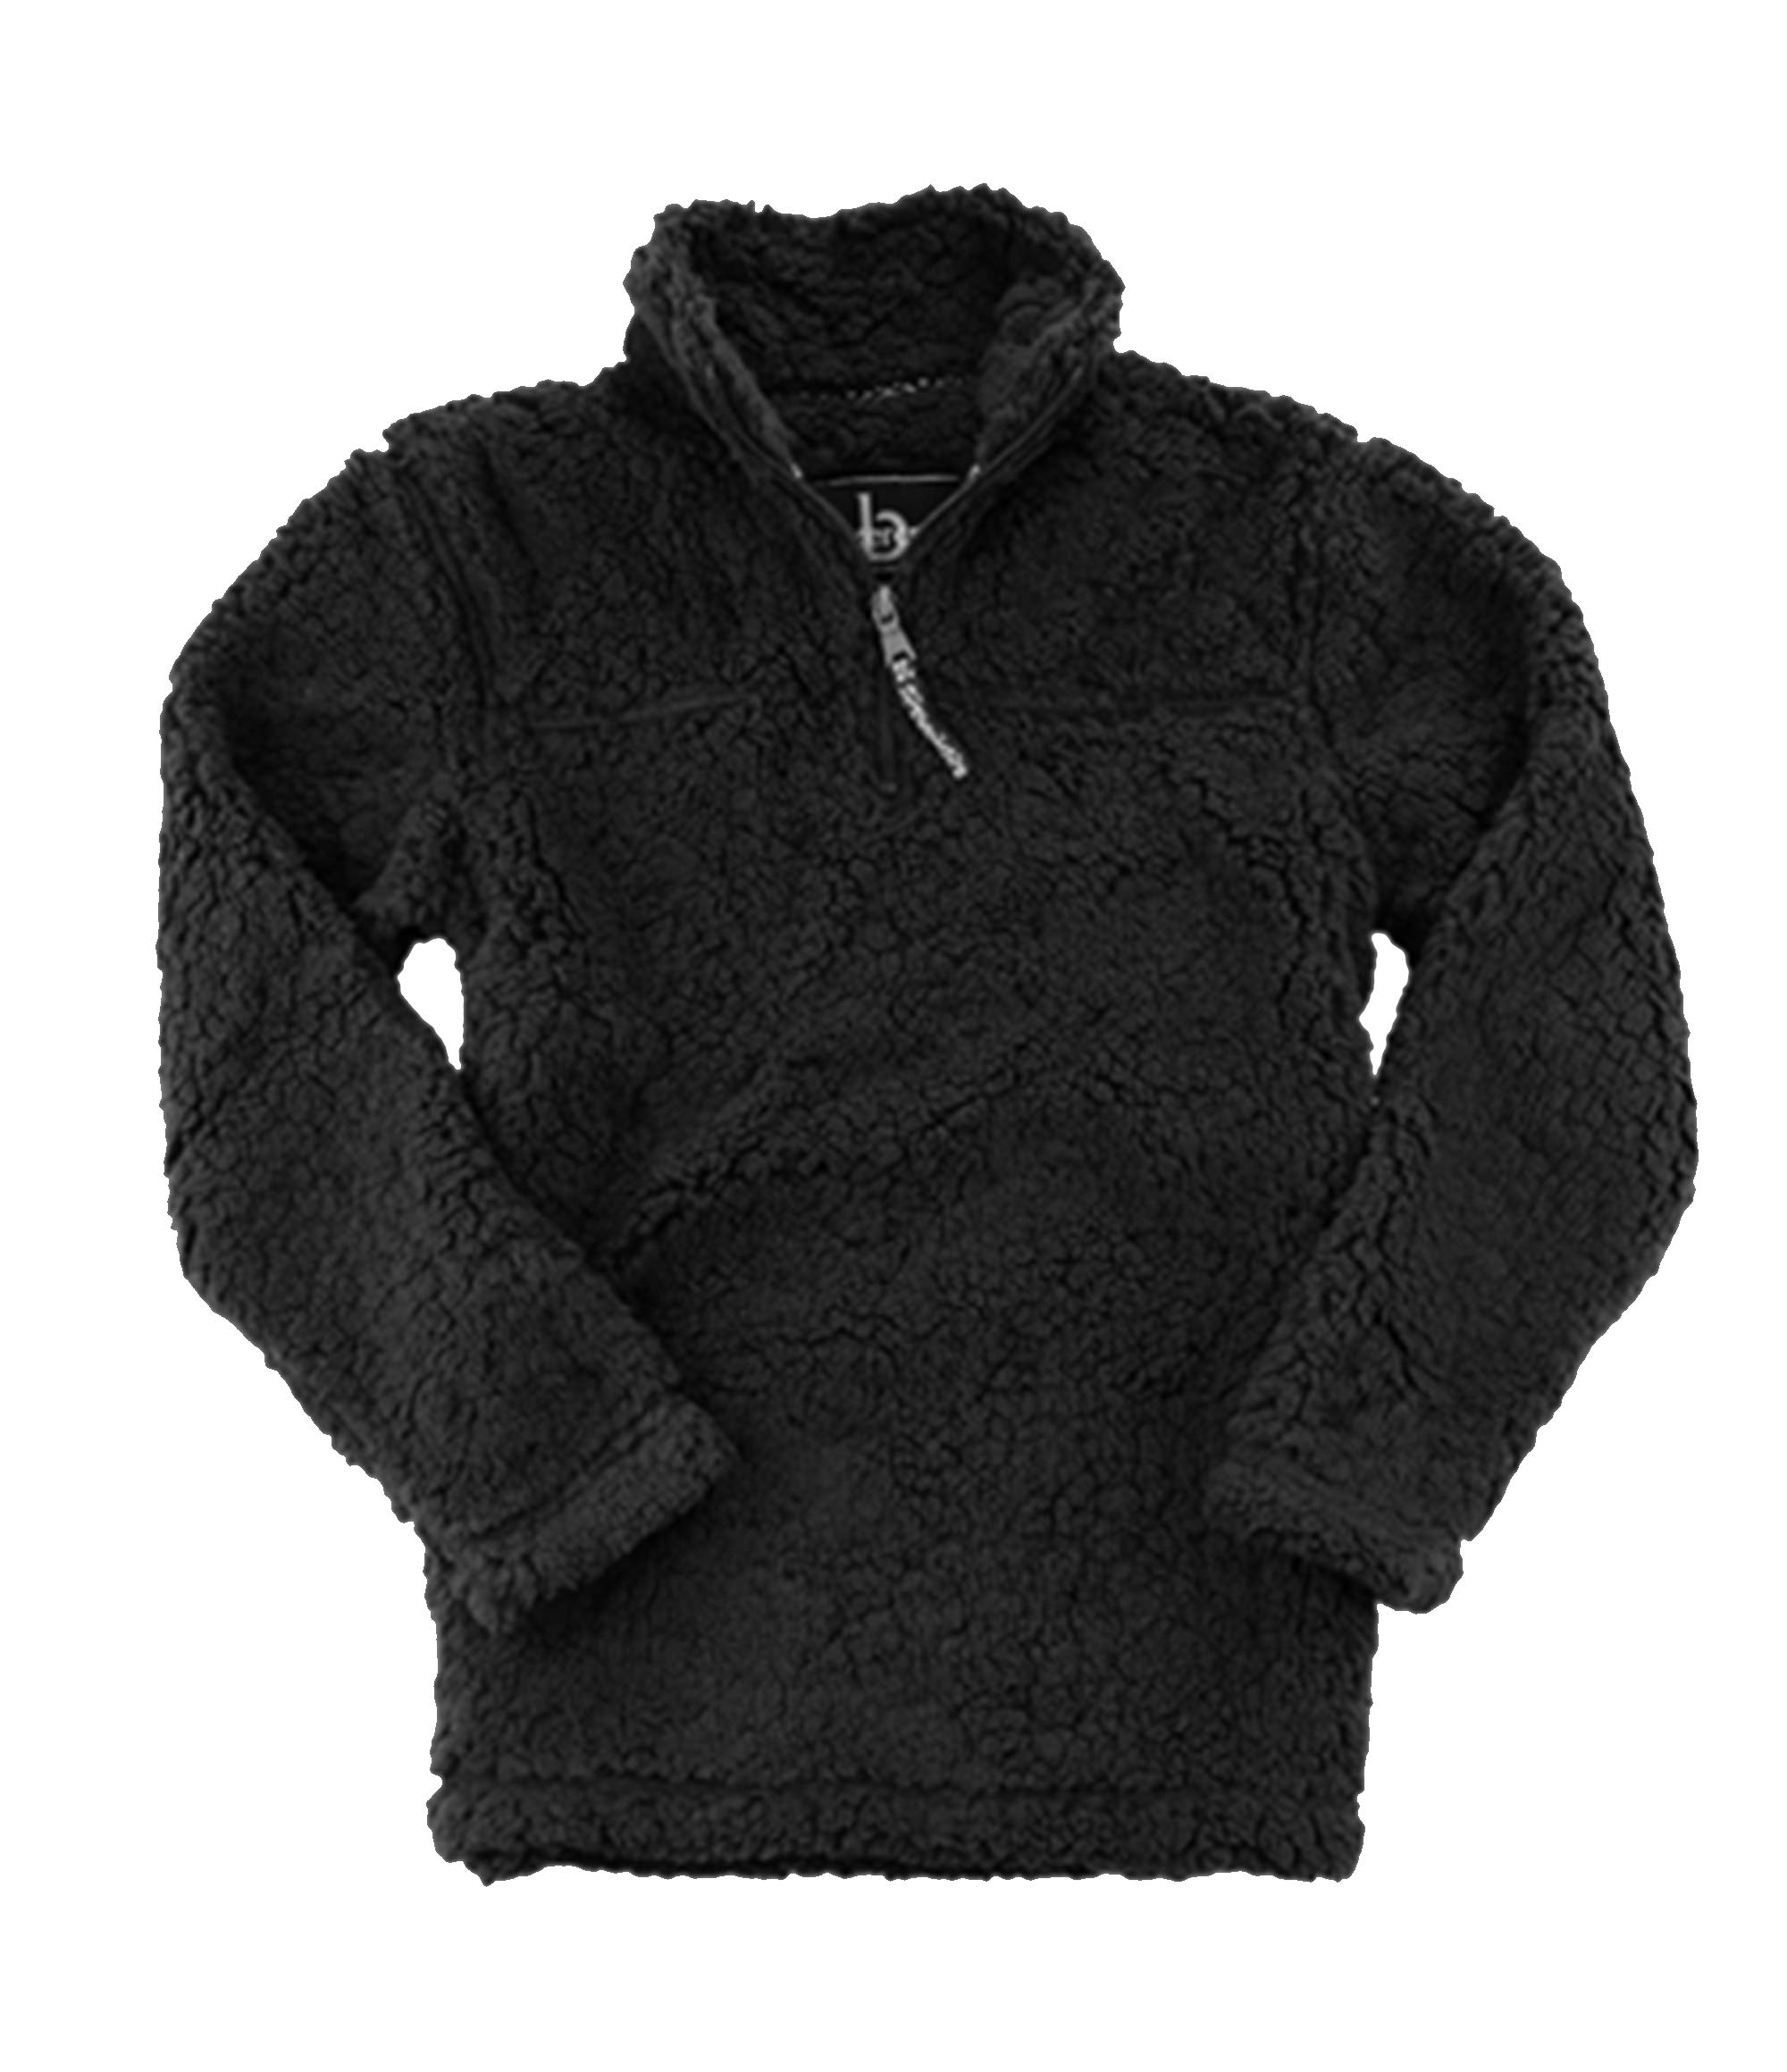 Boxercraft Adult Quarter Zip Sherpa Pullover-black-large by Boxercraft Adult Quarter Zip Sherpa Pullover-black-large